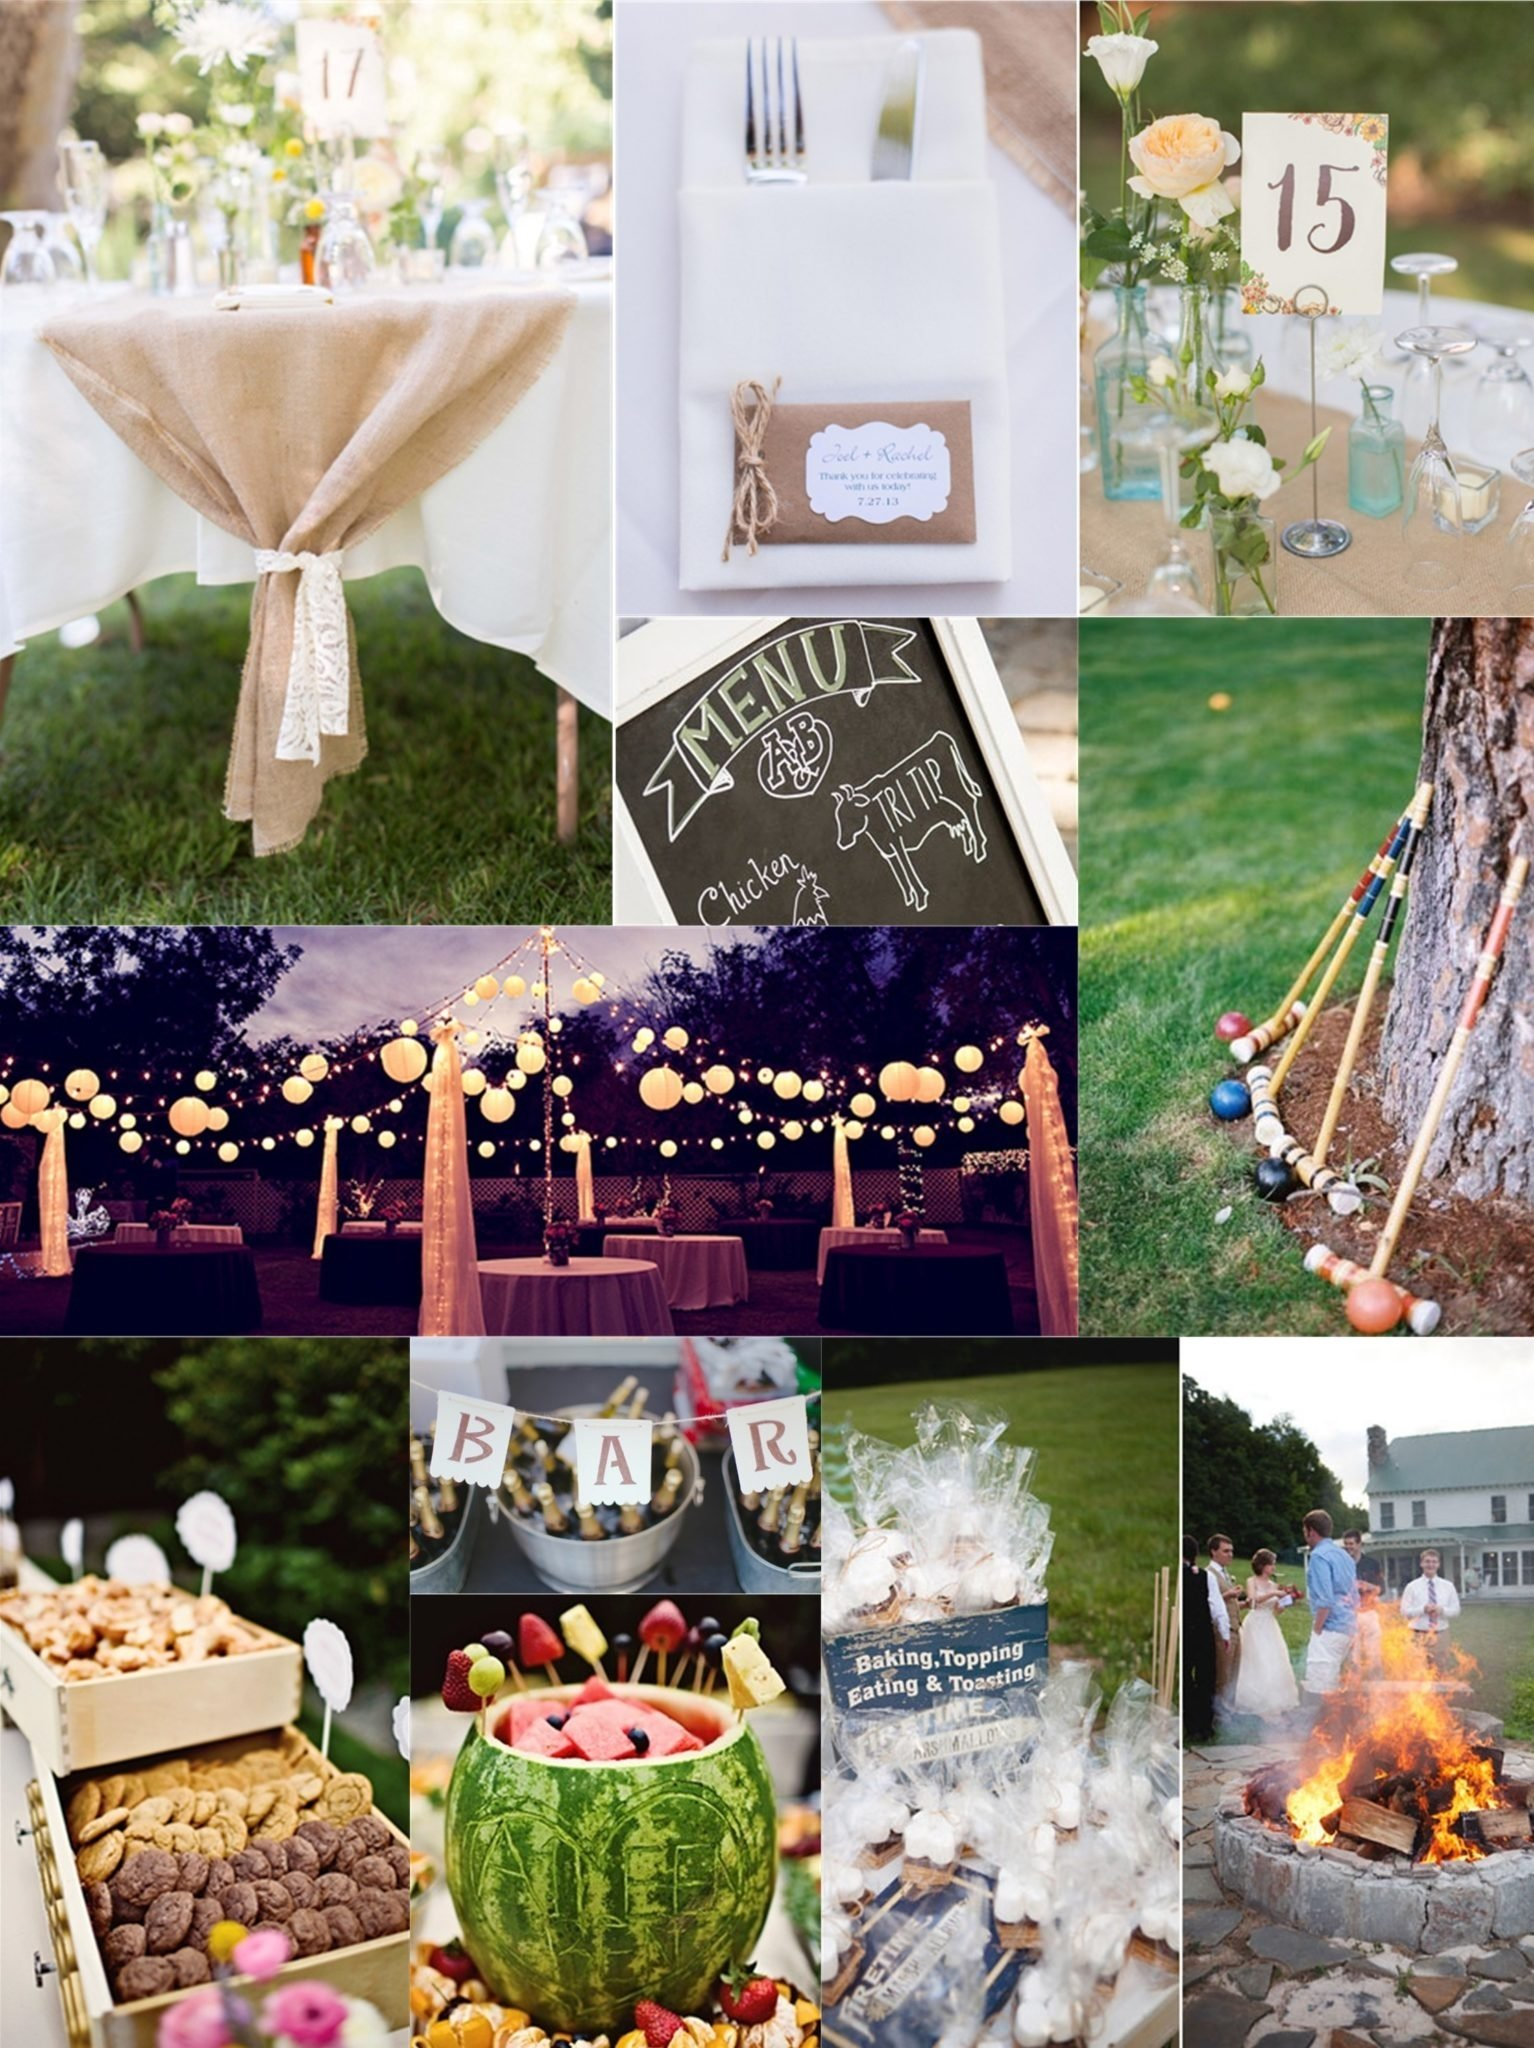 10 Famous Wedding On A Budget Ideas essential guide to a backyard wedding on a budget 4